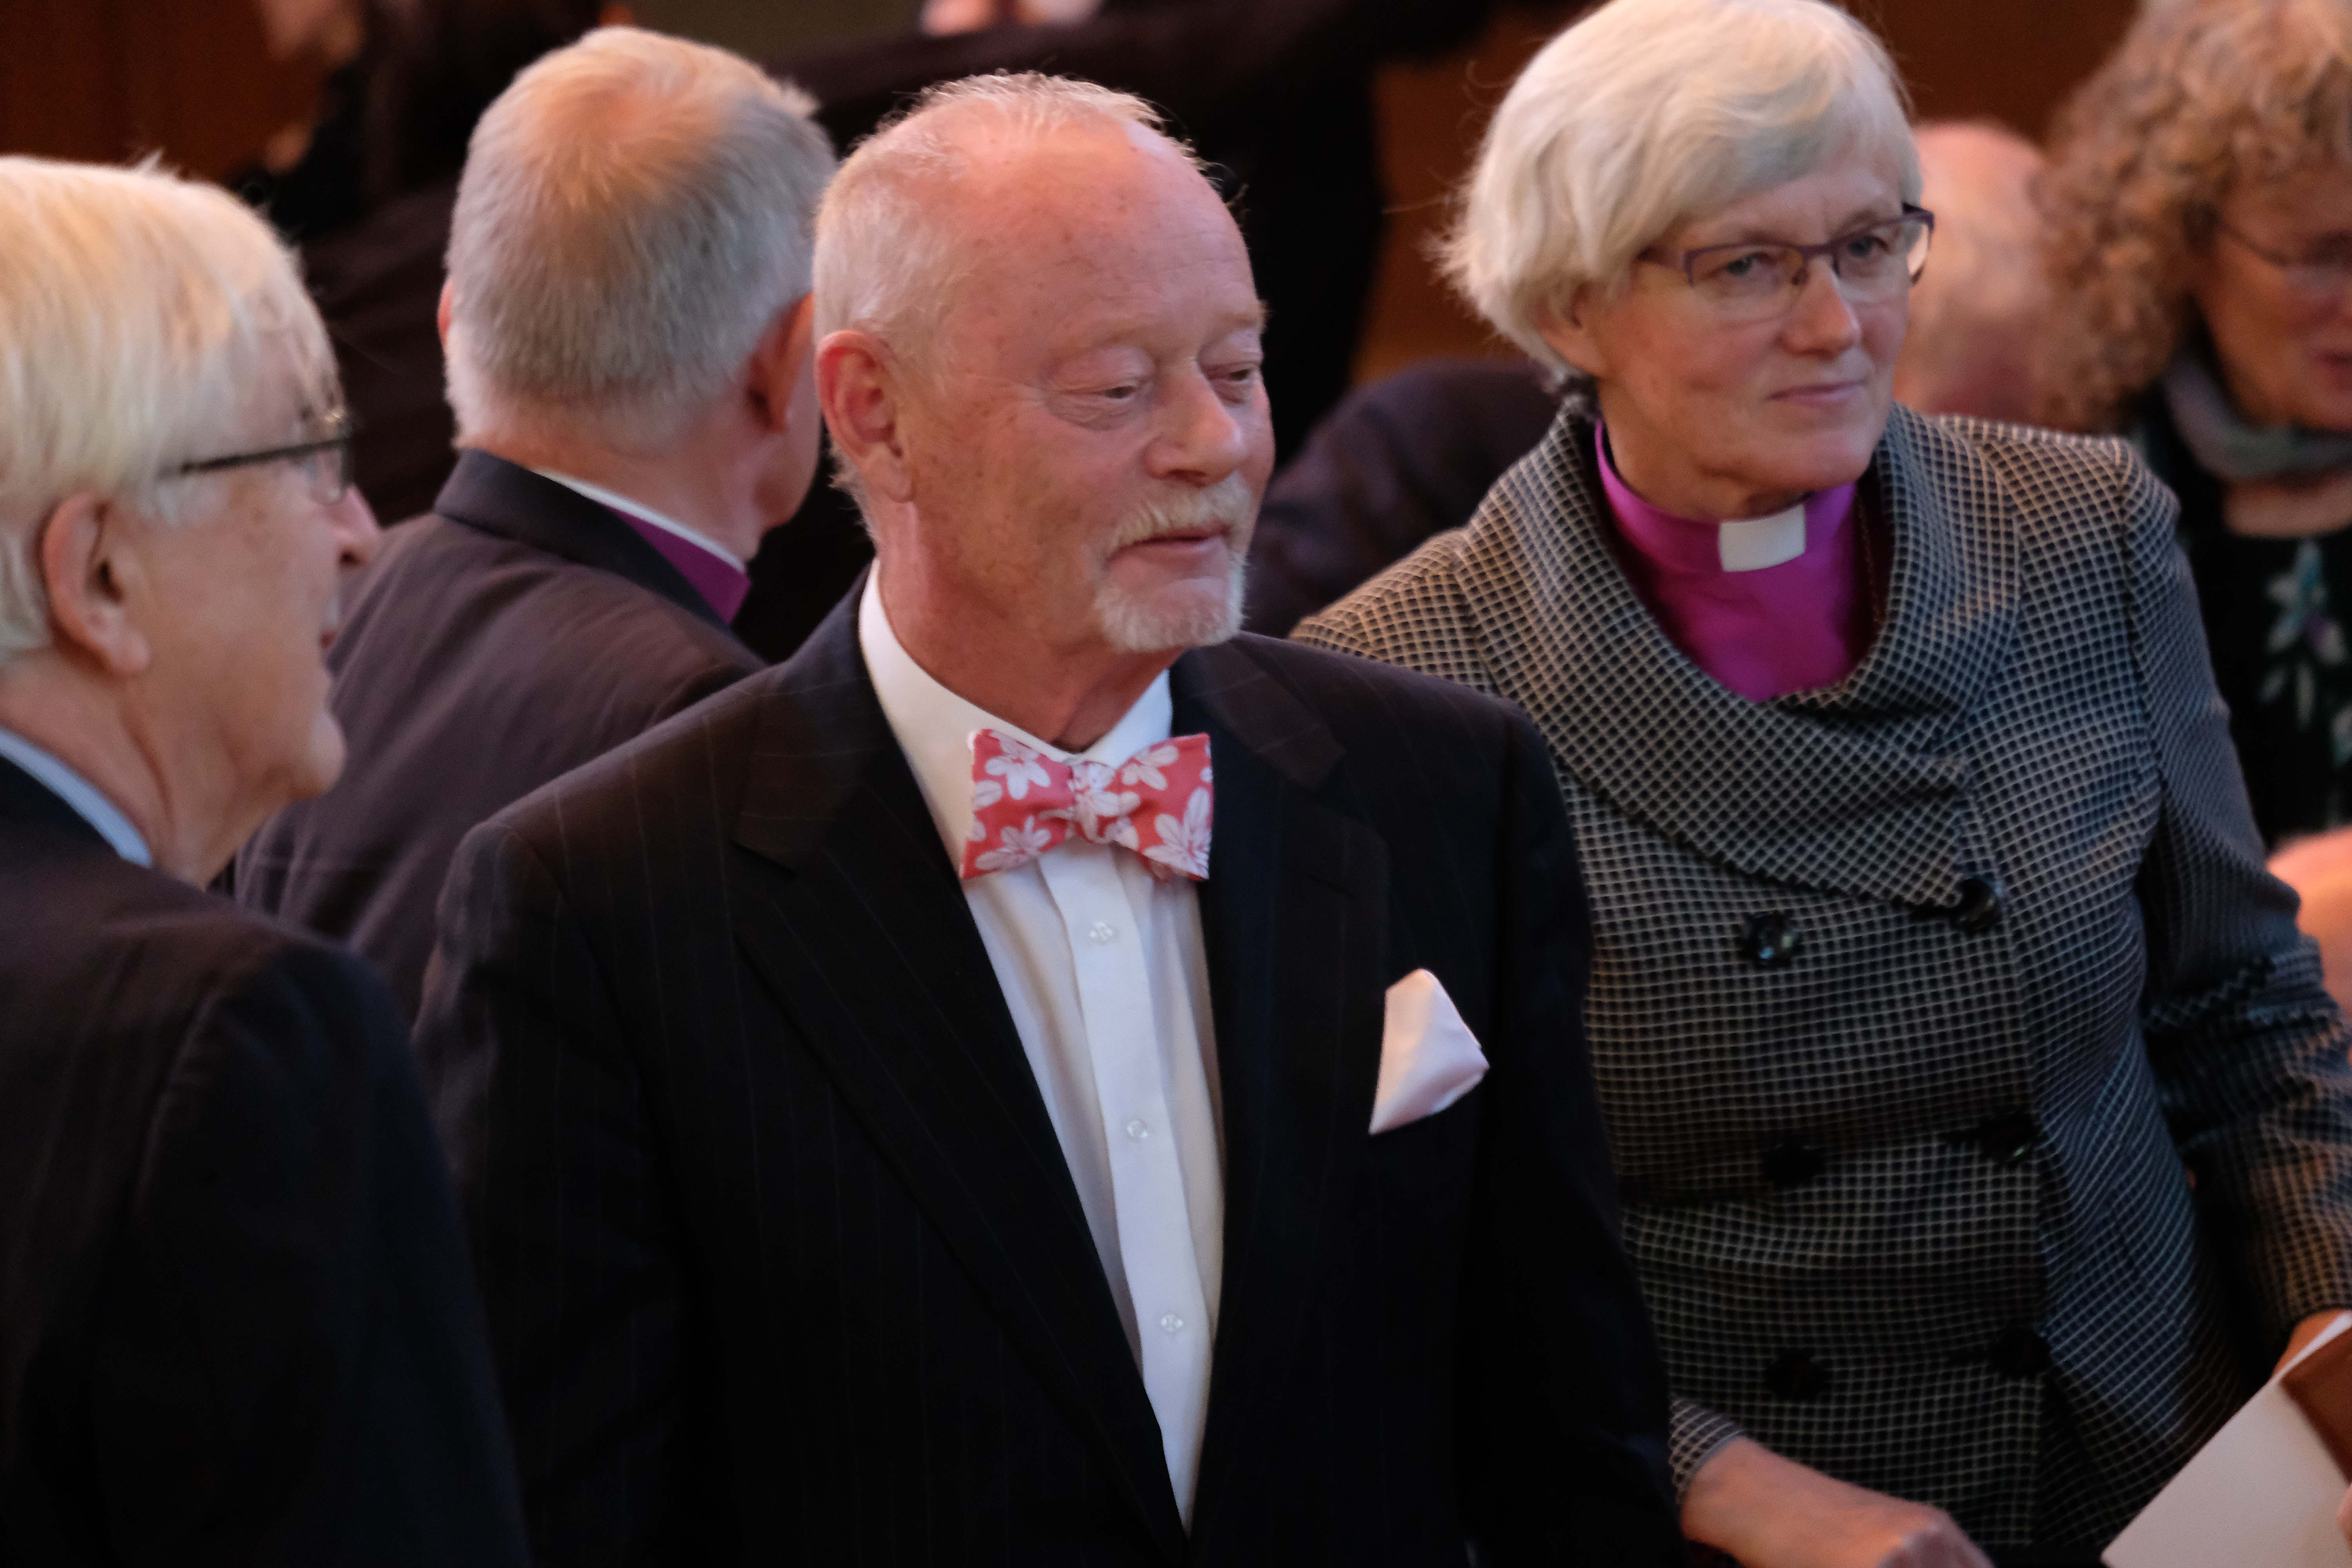 Jon Elster and Johan Skytte Professor Emeritus Leif Lewin with Archbishop of Sweden Antje Jackelén